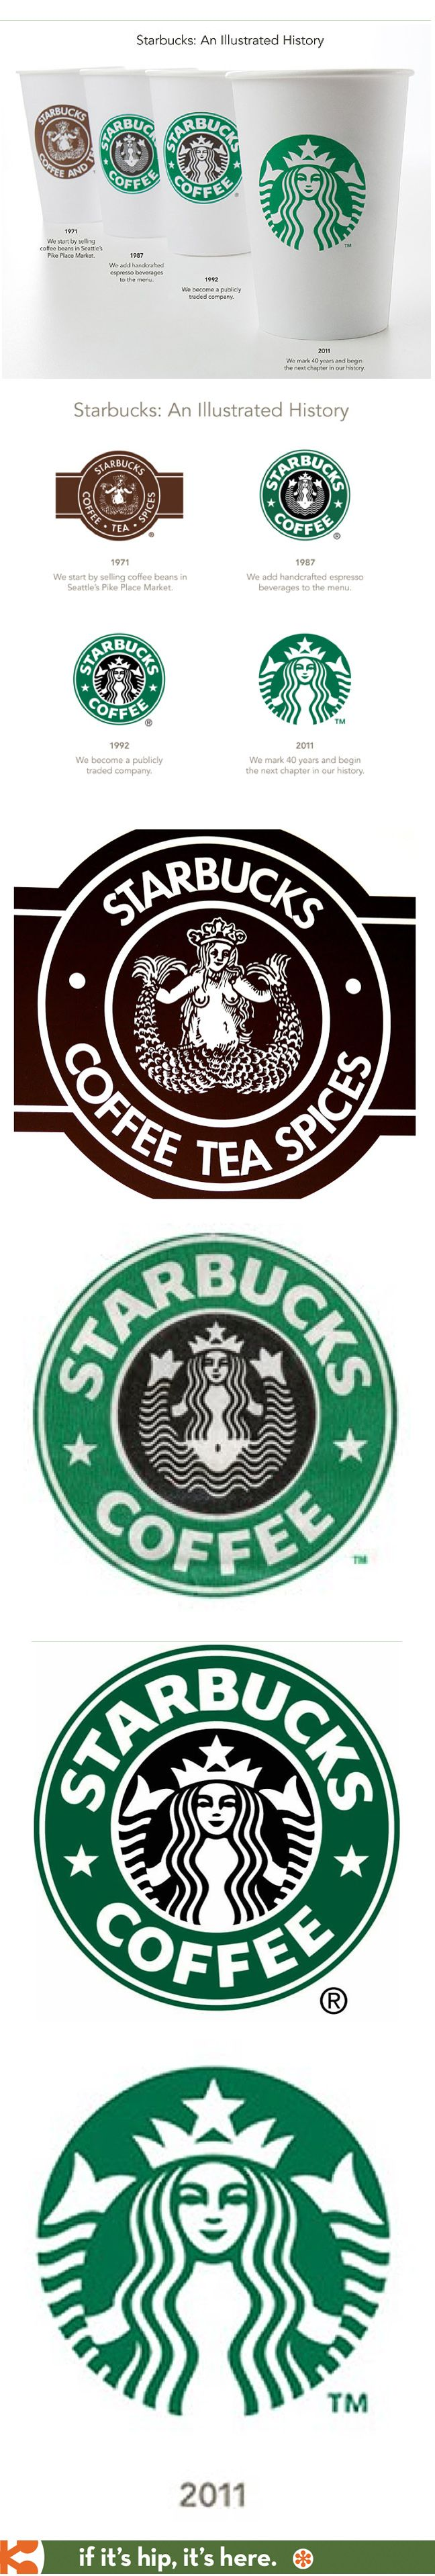 star bucks logo change